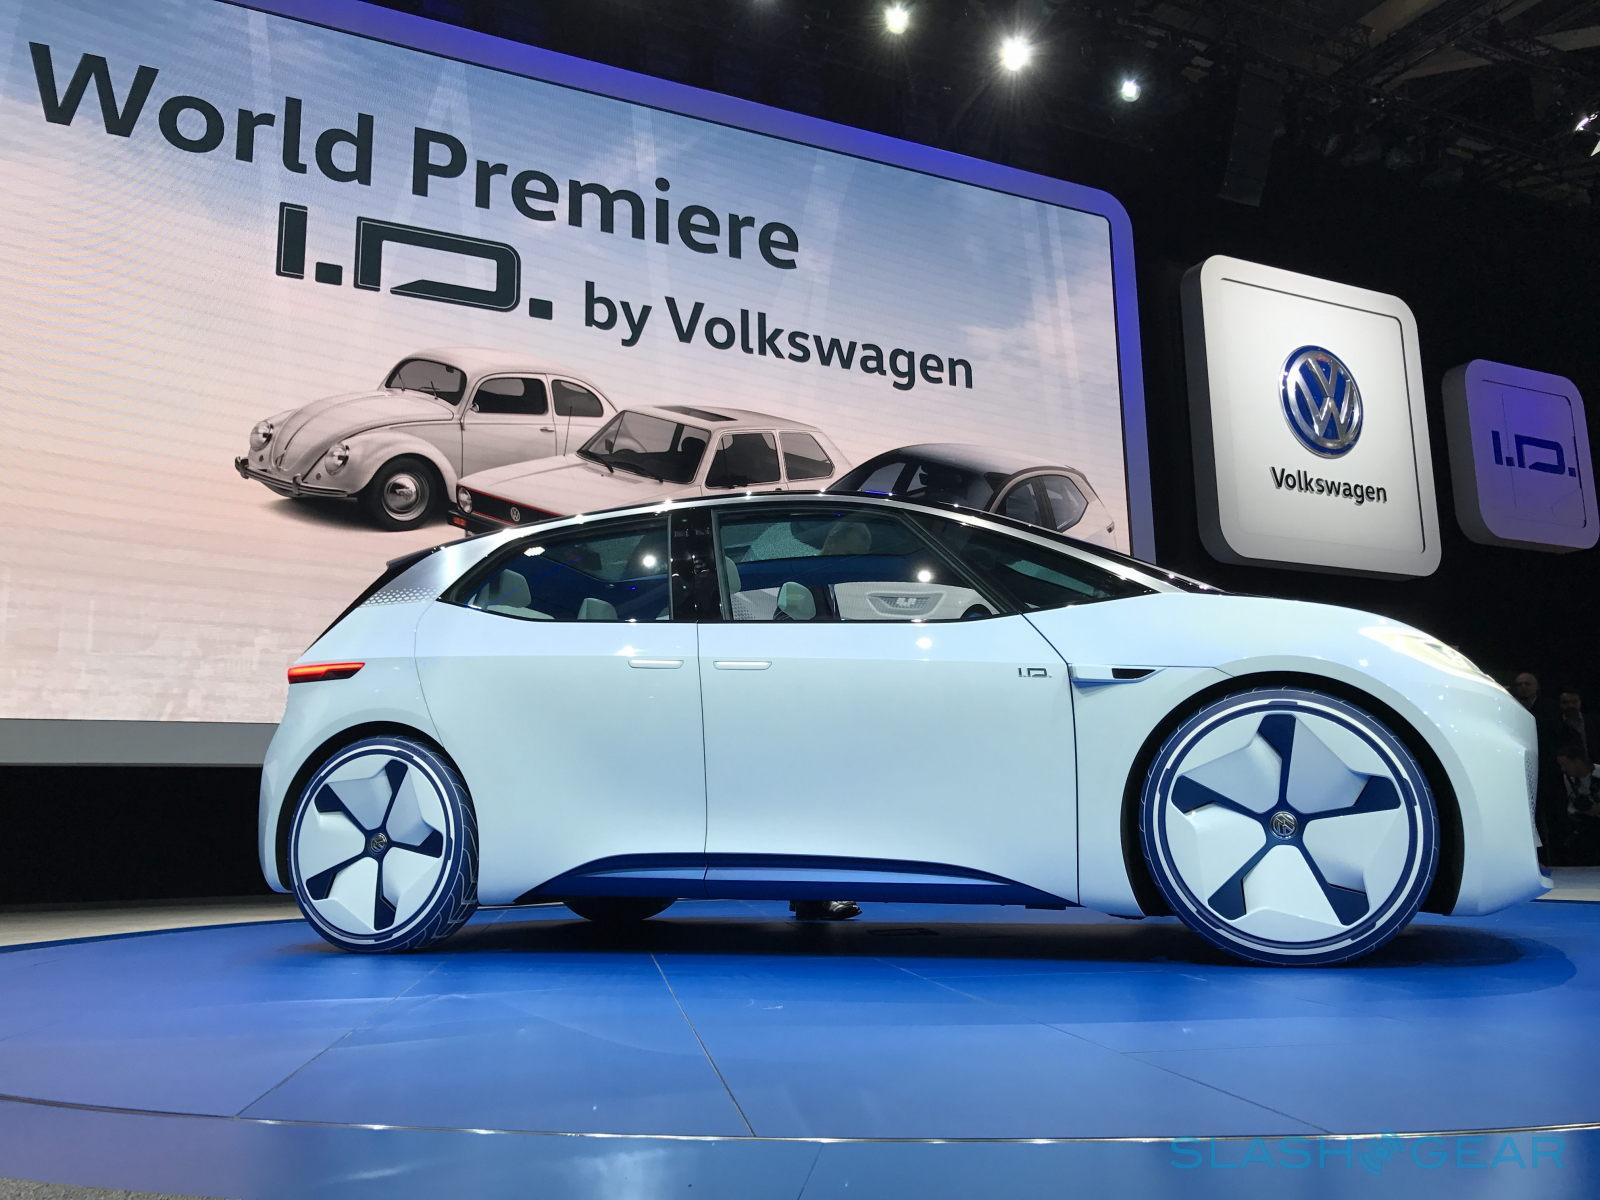 hight resolution of plants in emden and hanover will also be switching over to electric production from 2022 before that in 2020 two electric vehicle plants in china